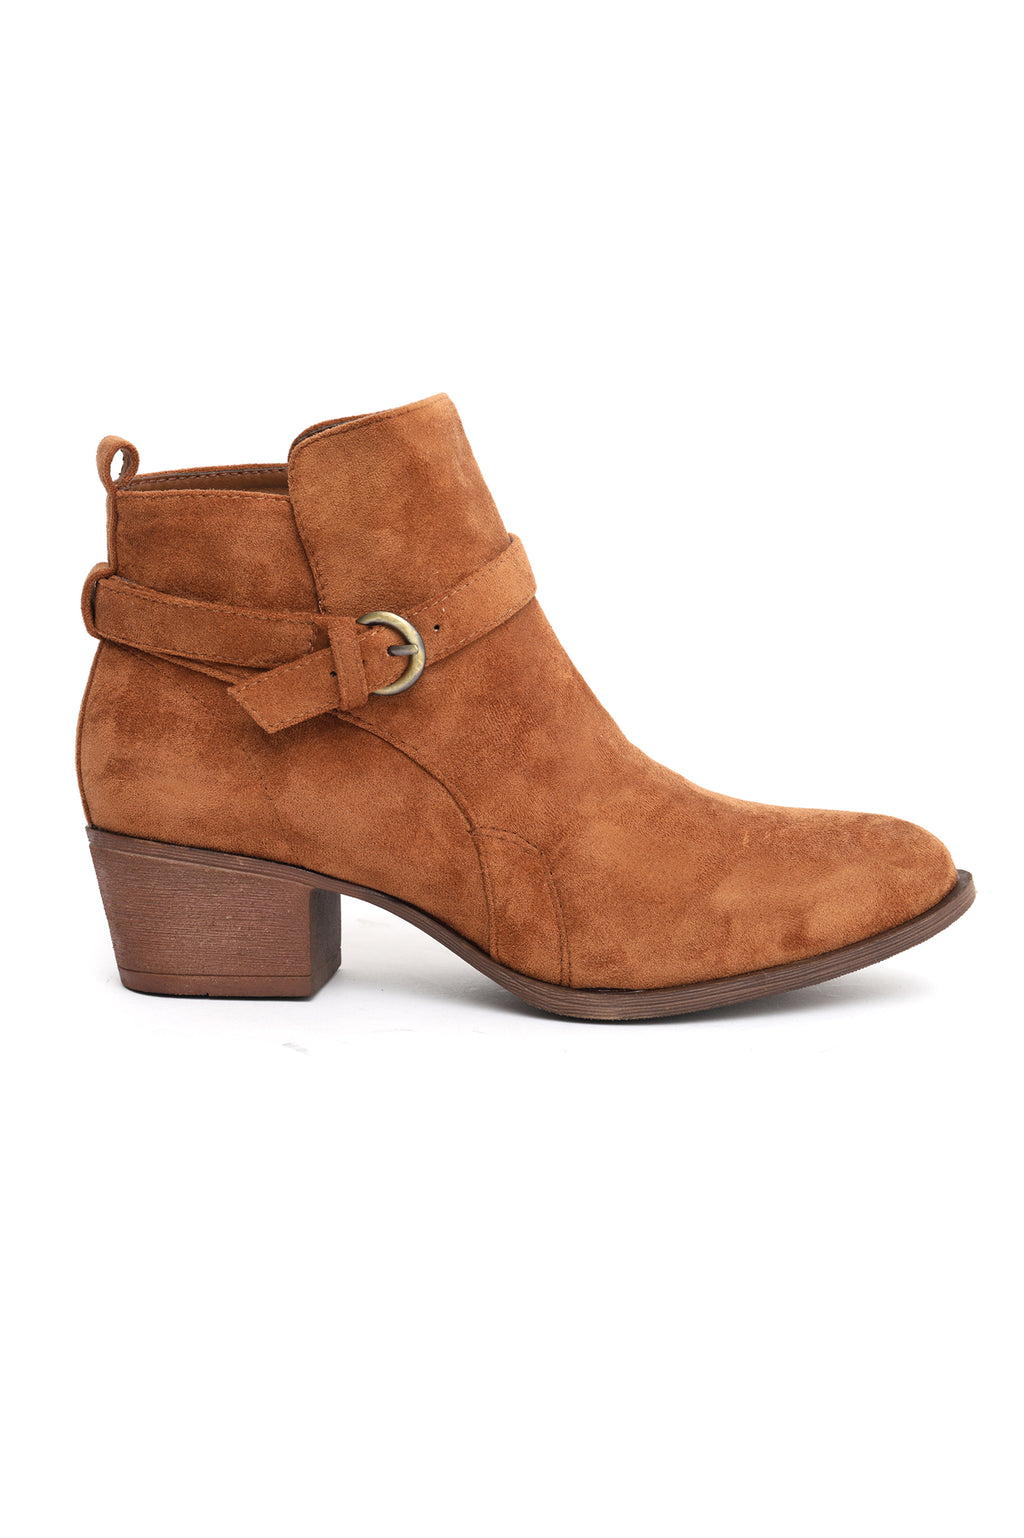 BUCKLED BOOTS-CAMEL